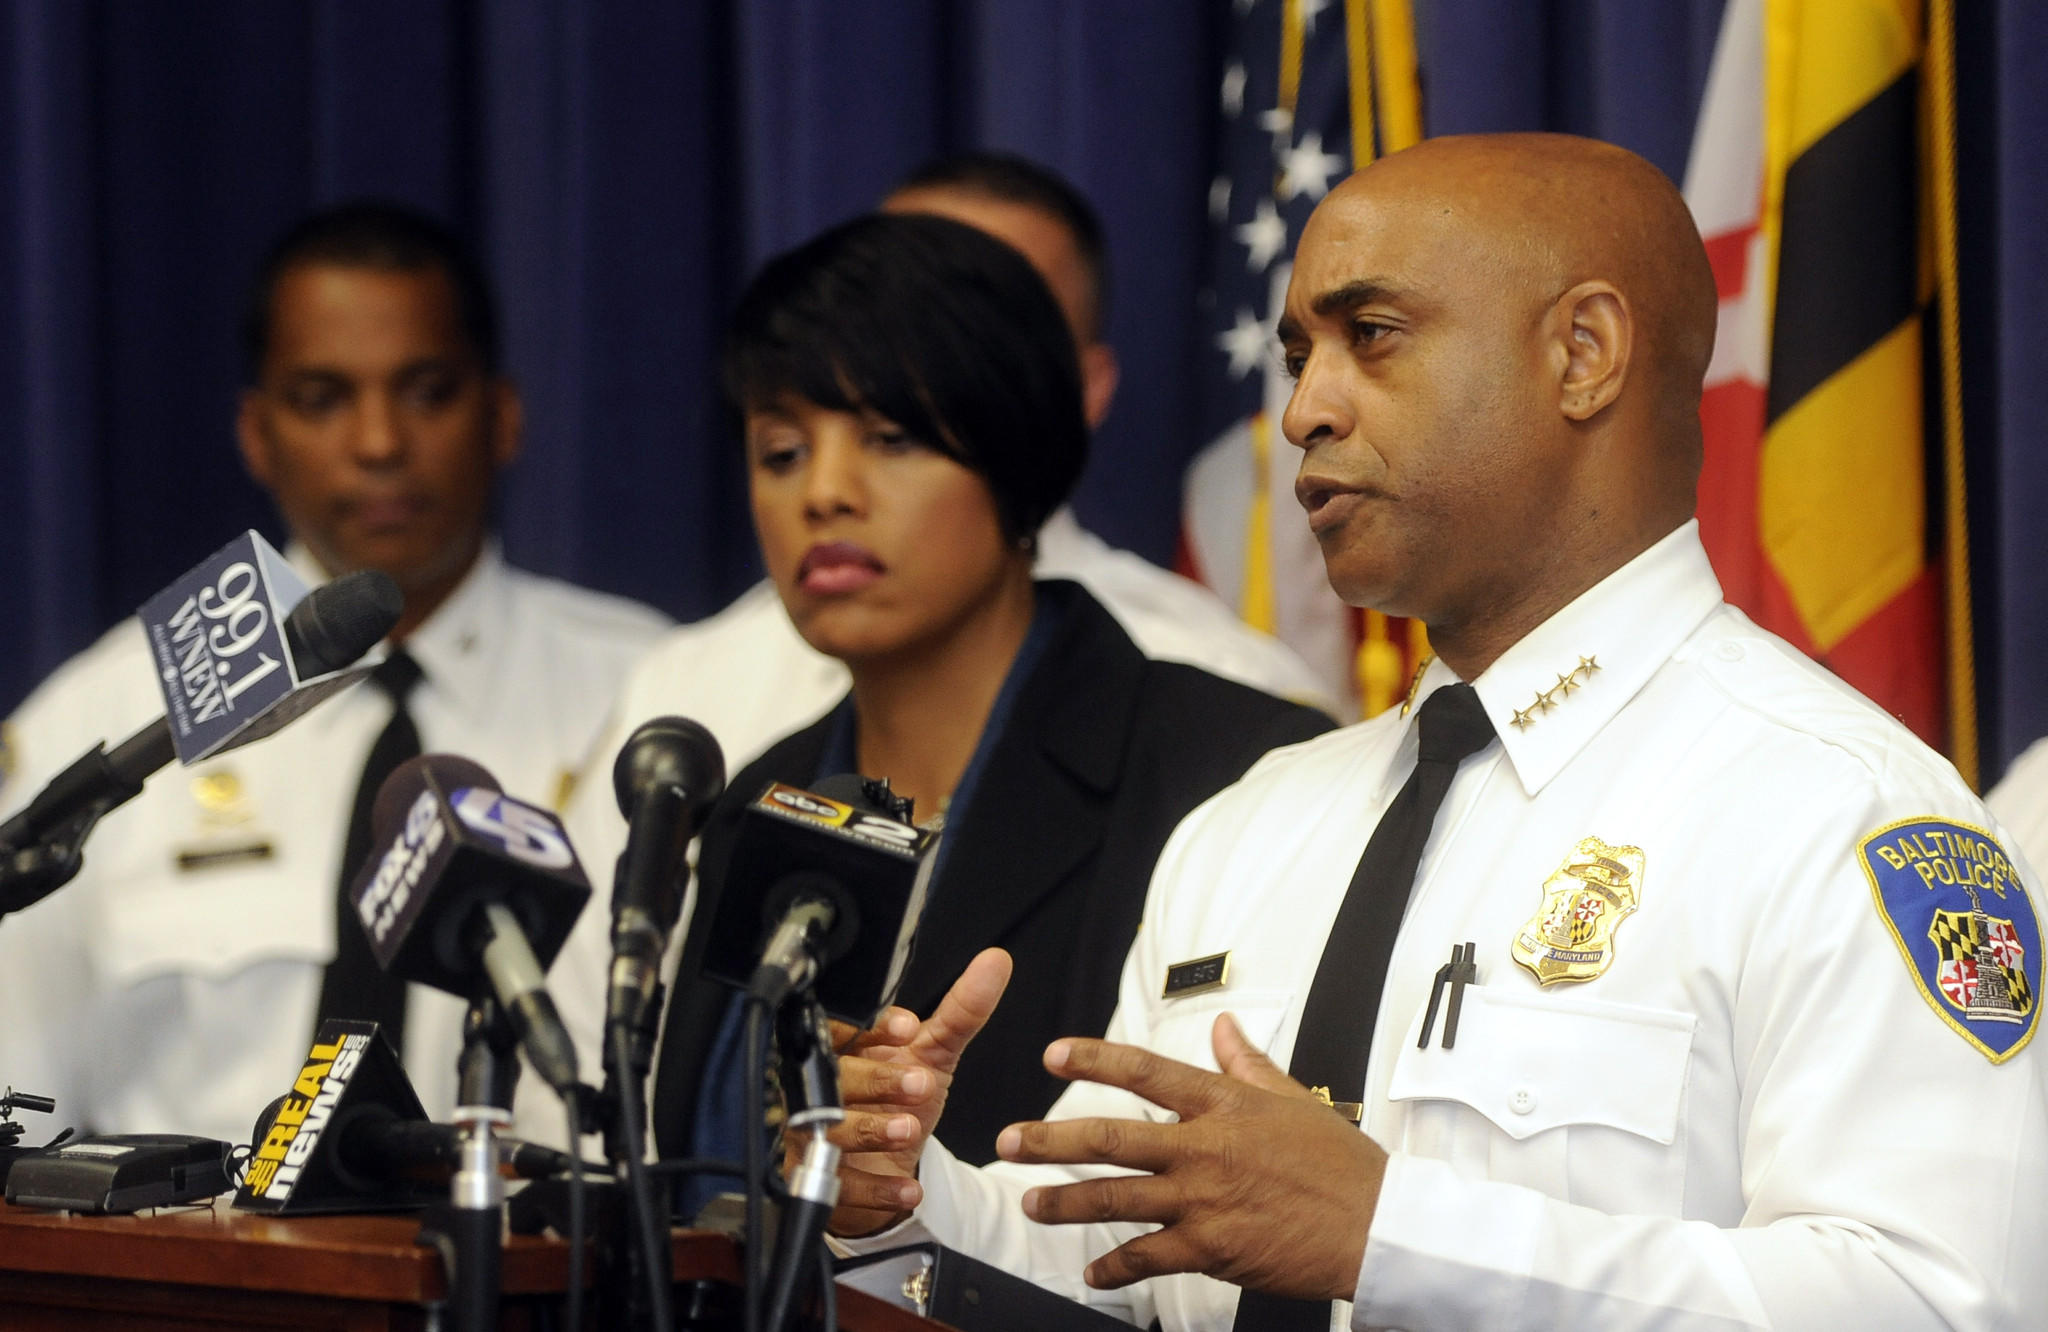 Baltimore Mayor Stephanie Rawlings-Blake, left, and Police Commissioner Anthony W. Batts, right, discuss an upcoming federal review of the police department.